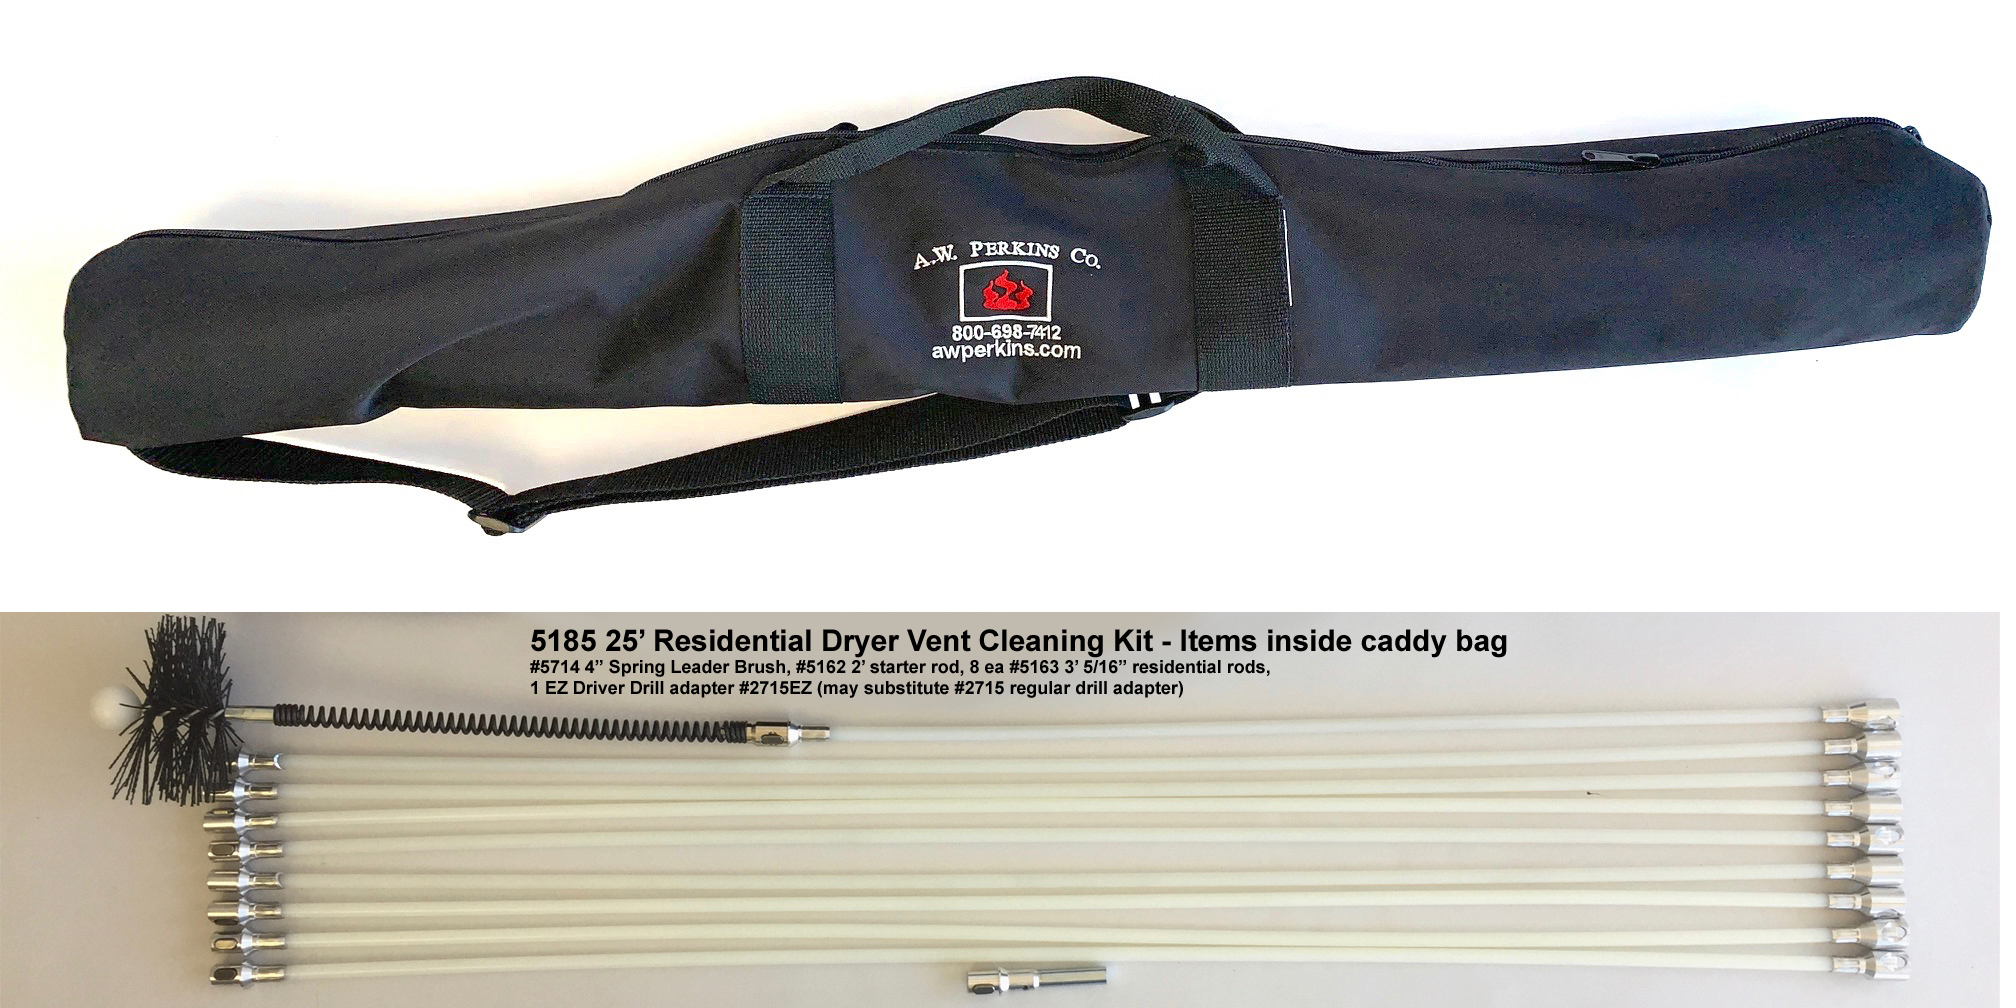 5185 25' Residential Rotary Brush Dryer Vent Cleaning Kit w/Nylon Caddy